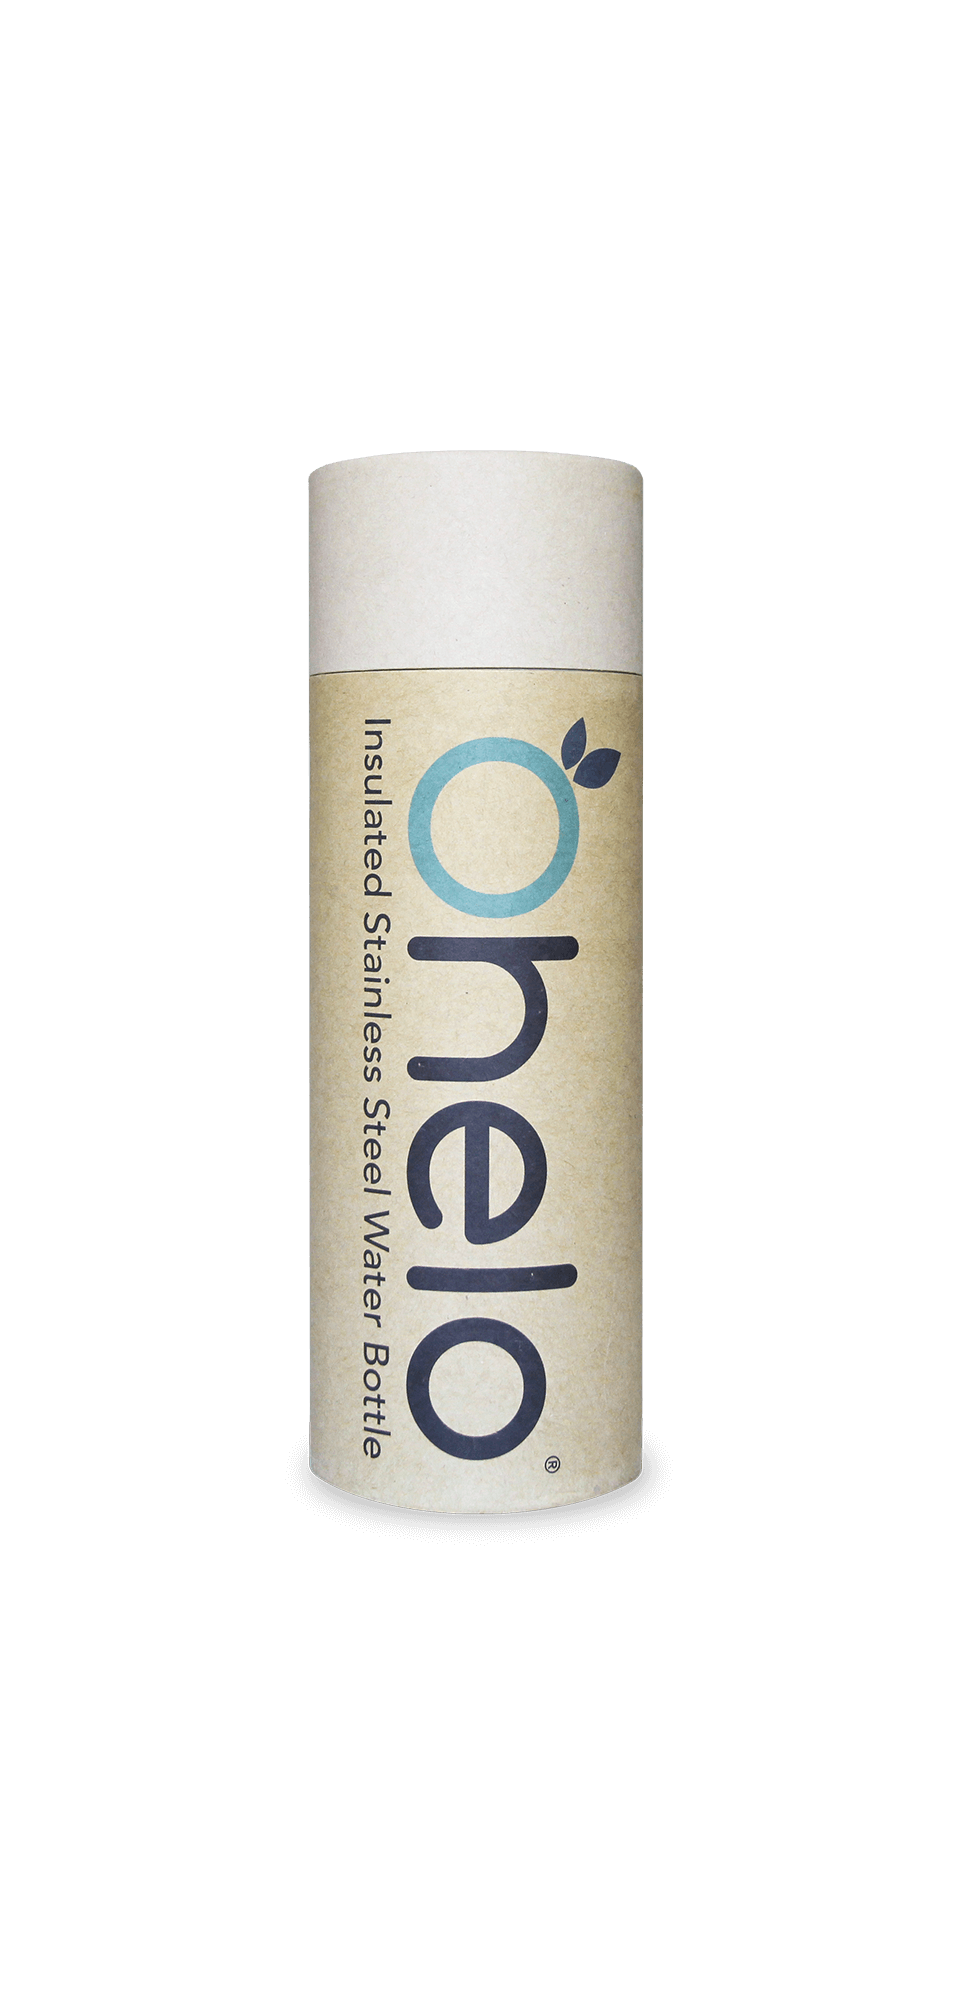 Ohelo white water bottle box